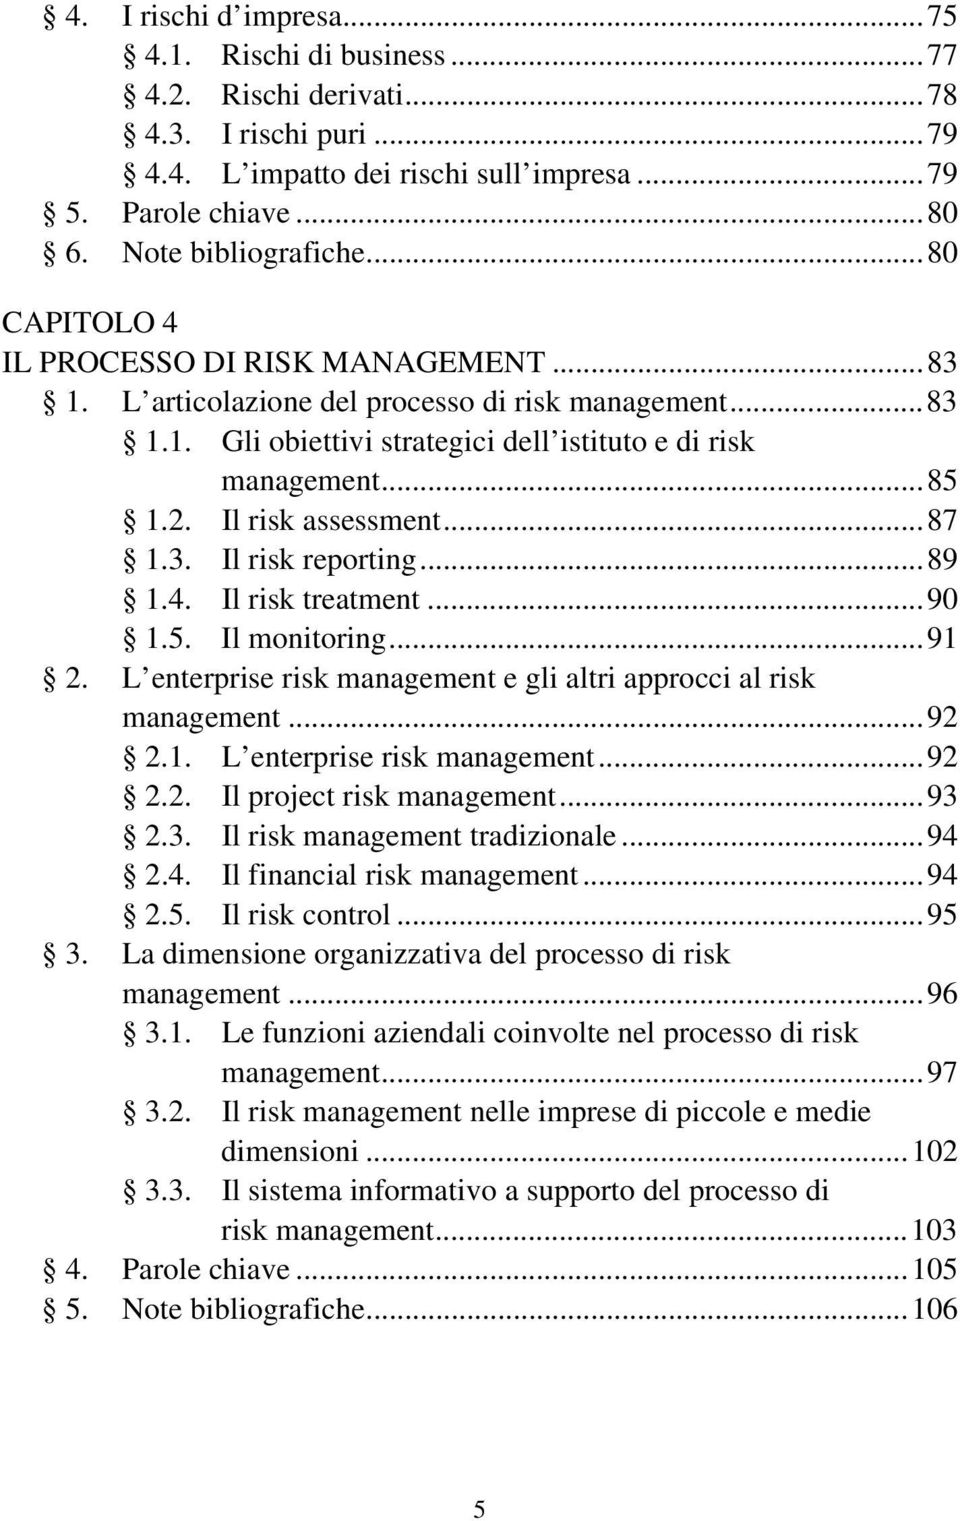 Il risk assessment...87 1.3. Il risk reporting...89 1.4. Il risk treatment...90 1.5. Il monitoring...91 2. L enterprise risk management e gli altri approcci al risk management...92 2.1. L enterprise risk management...92 2.2. Il project risk management.